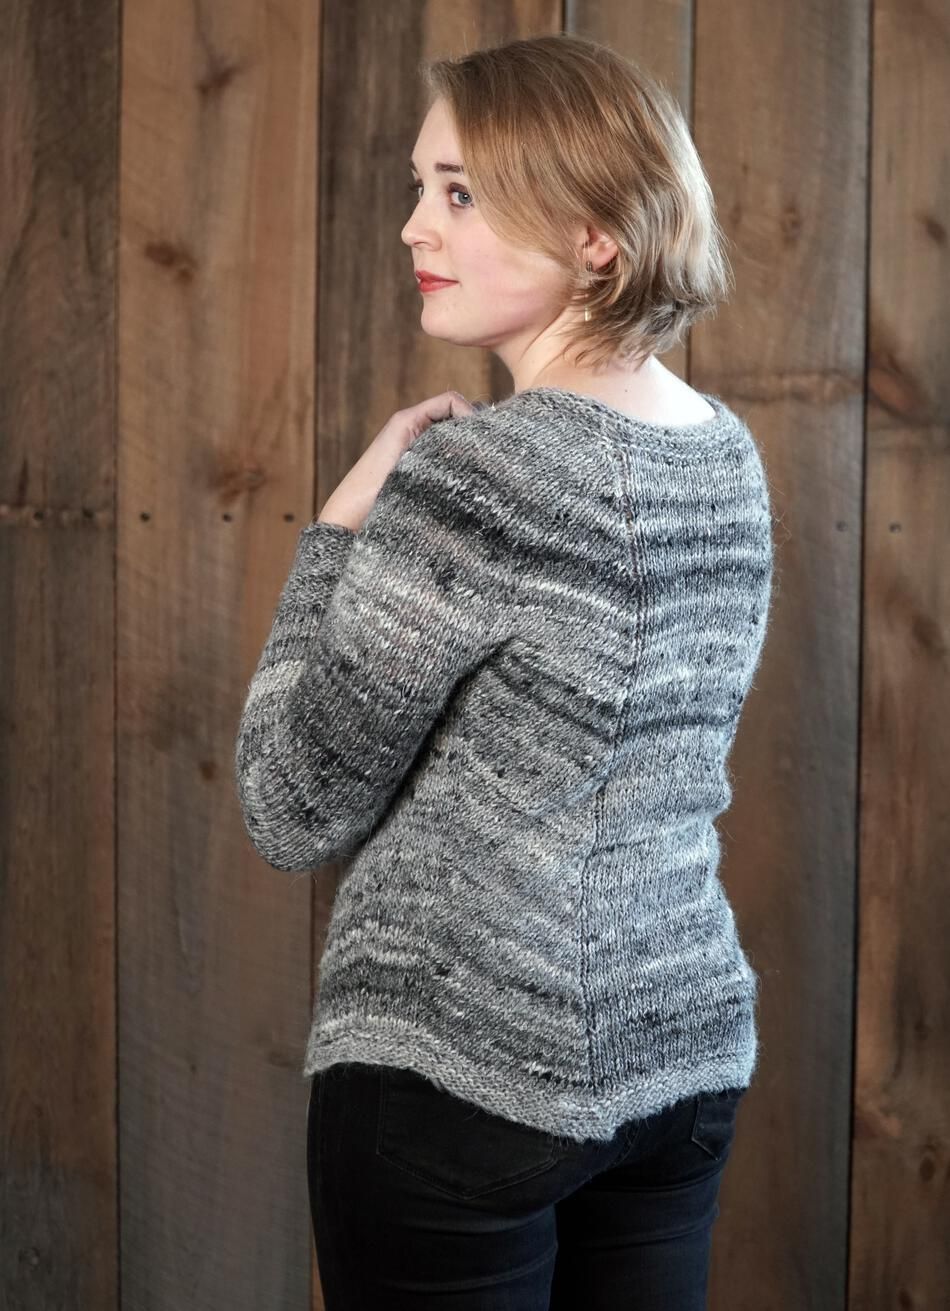 c8f2d0287 ... Mannequin Pullover Sweater Pattern Download (image C) ...